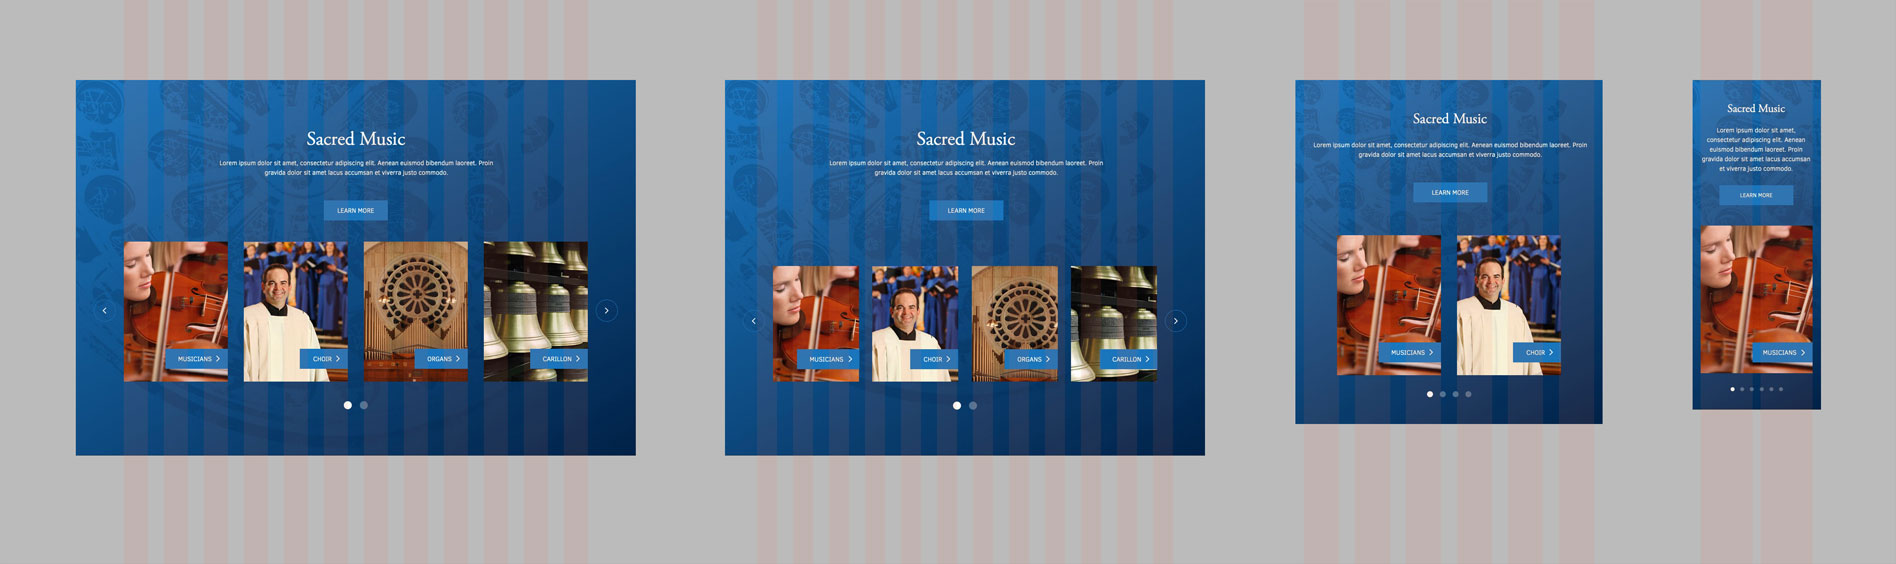 Basilica's responsive sacred music section mockup